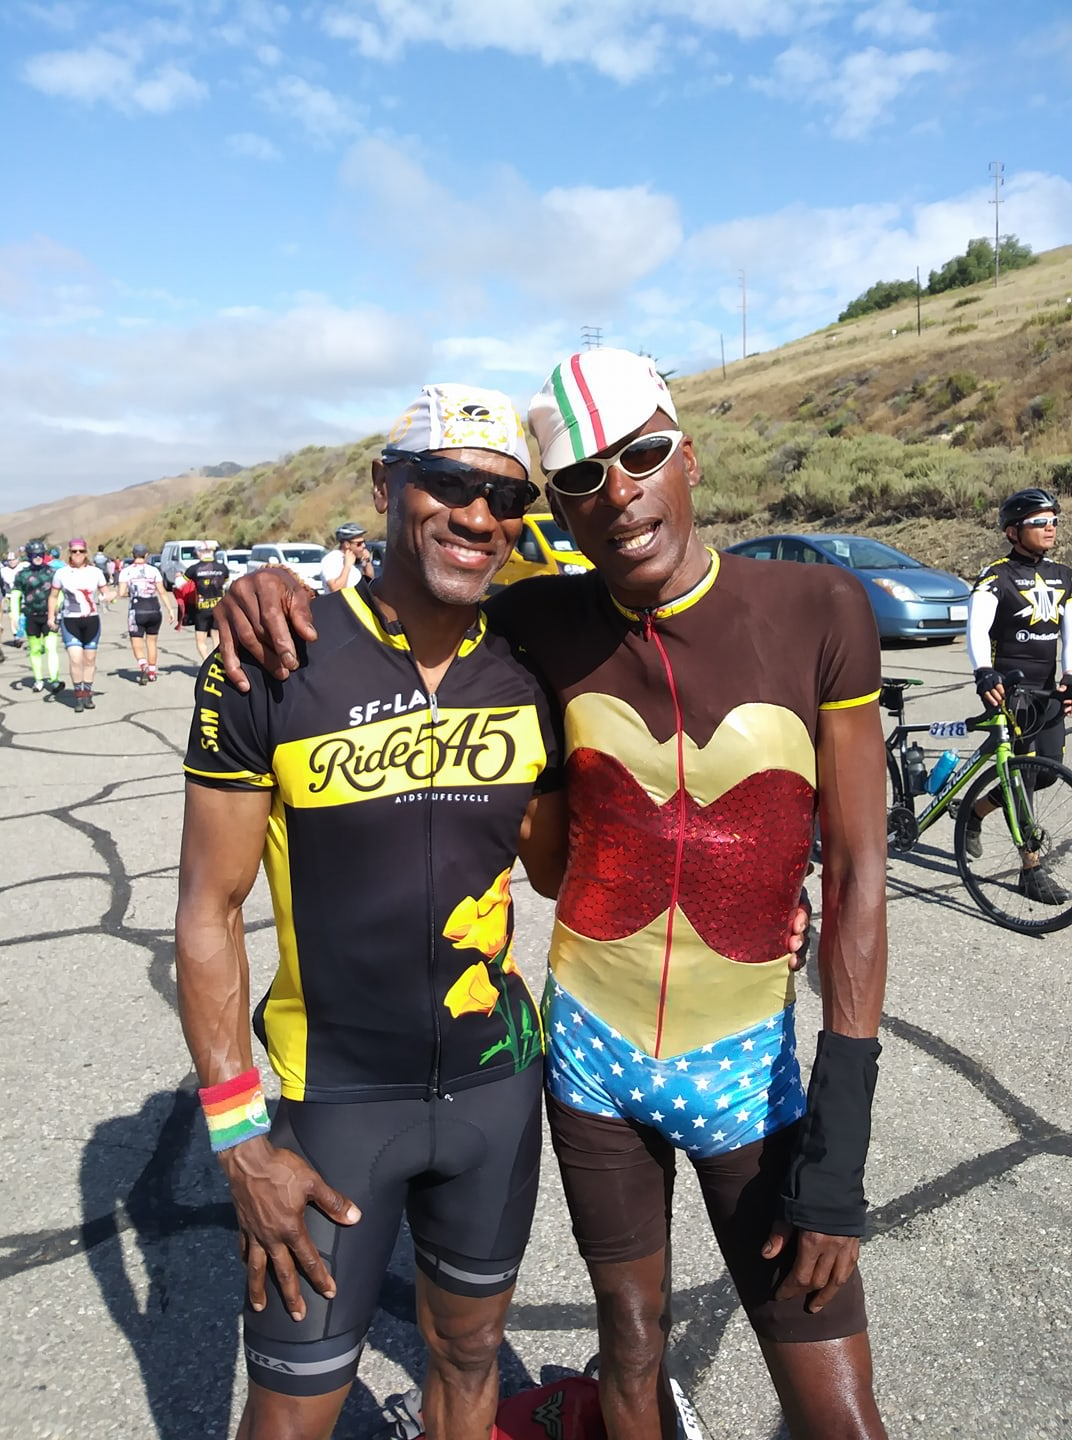 AIDS/LIFECYCLE 2017 RIDERS HUGGING